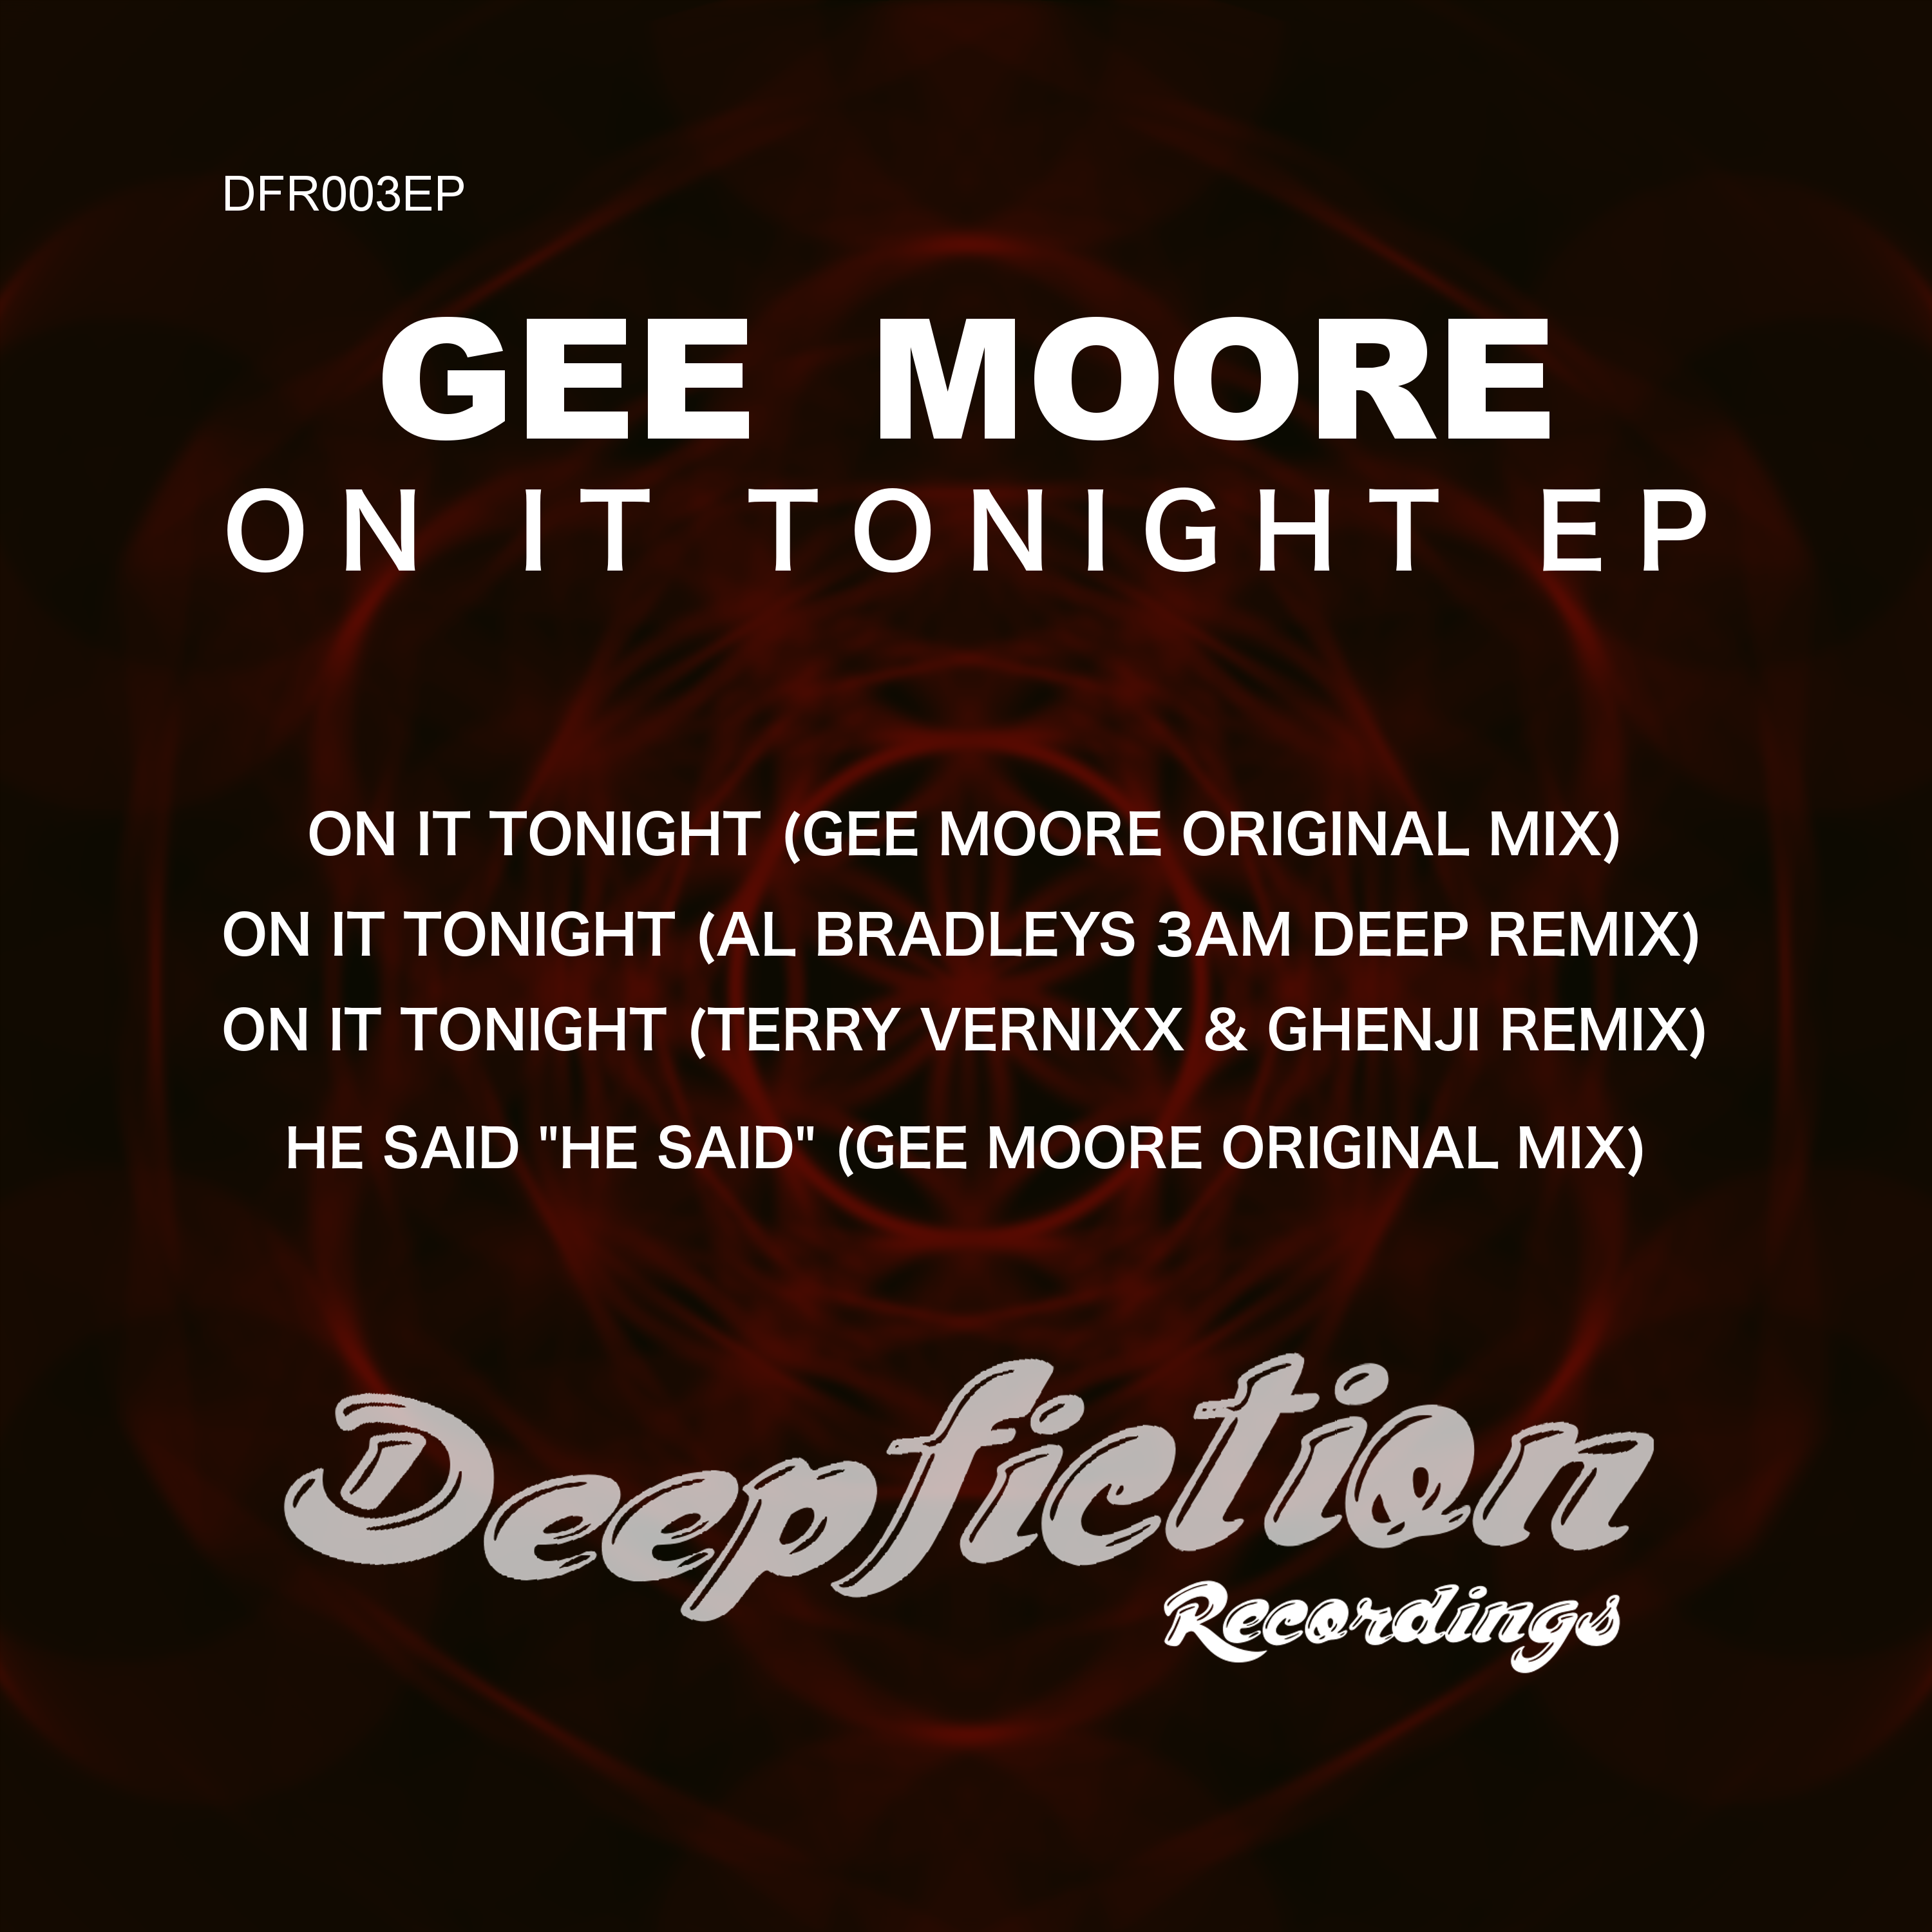 Gee Moore - On It Tonight EP - DFR003EP